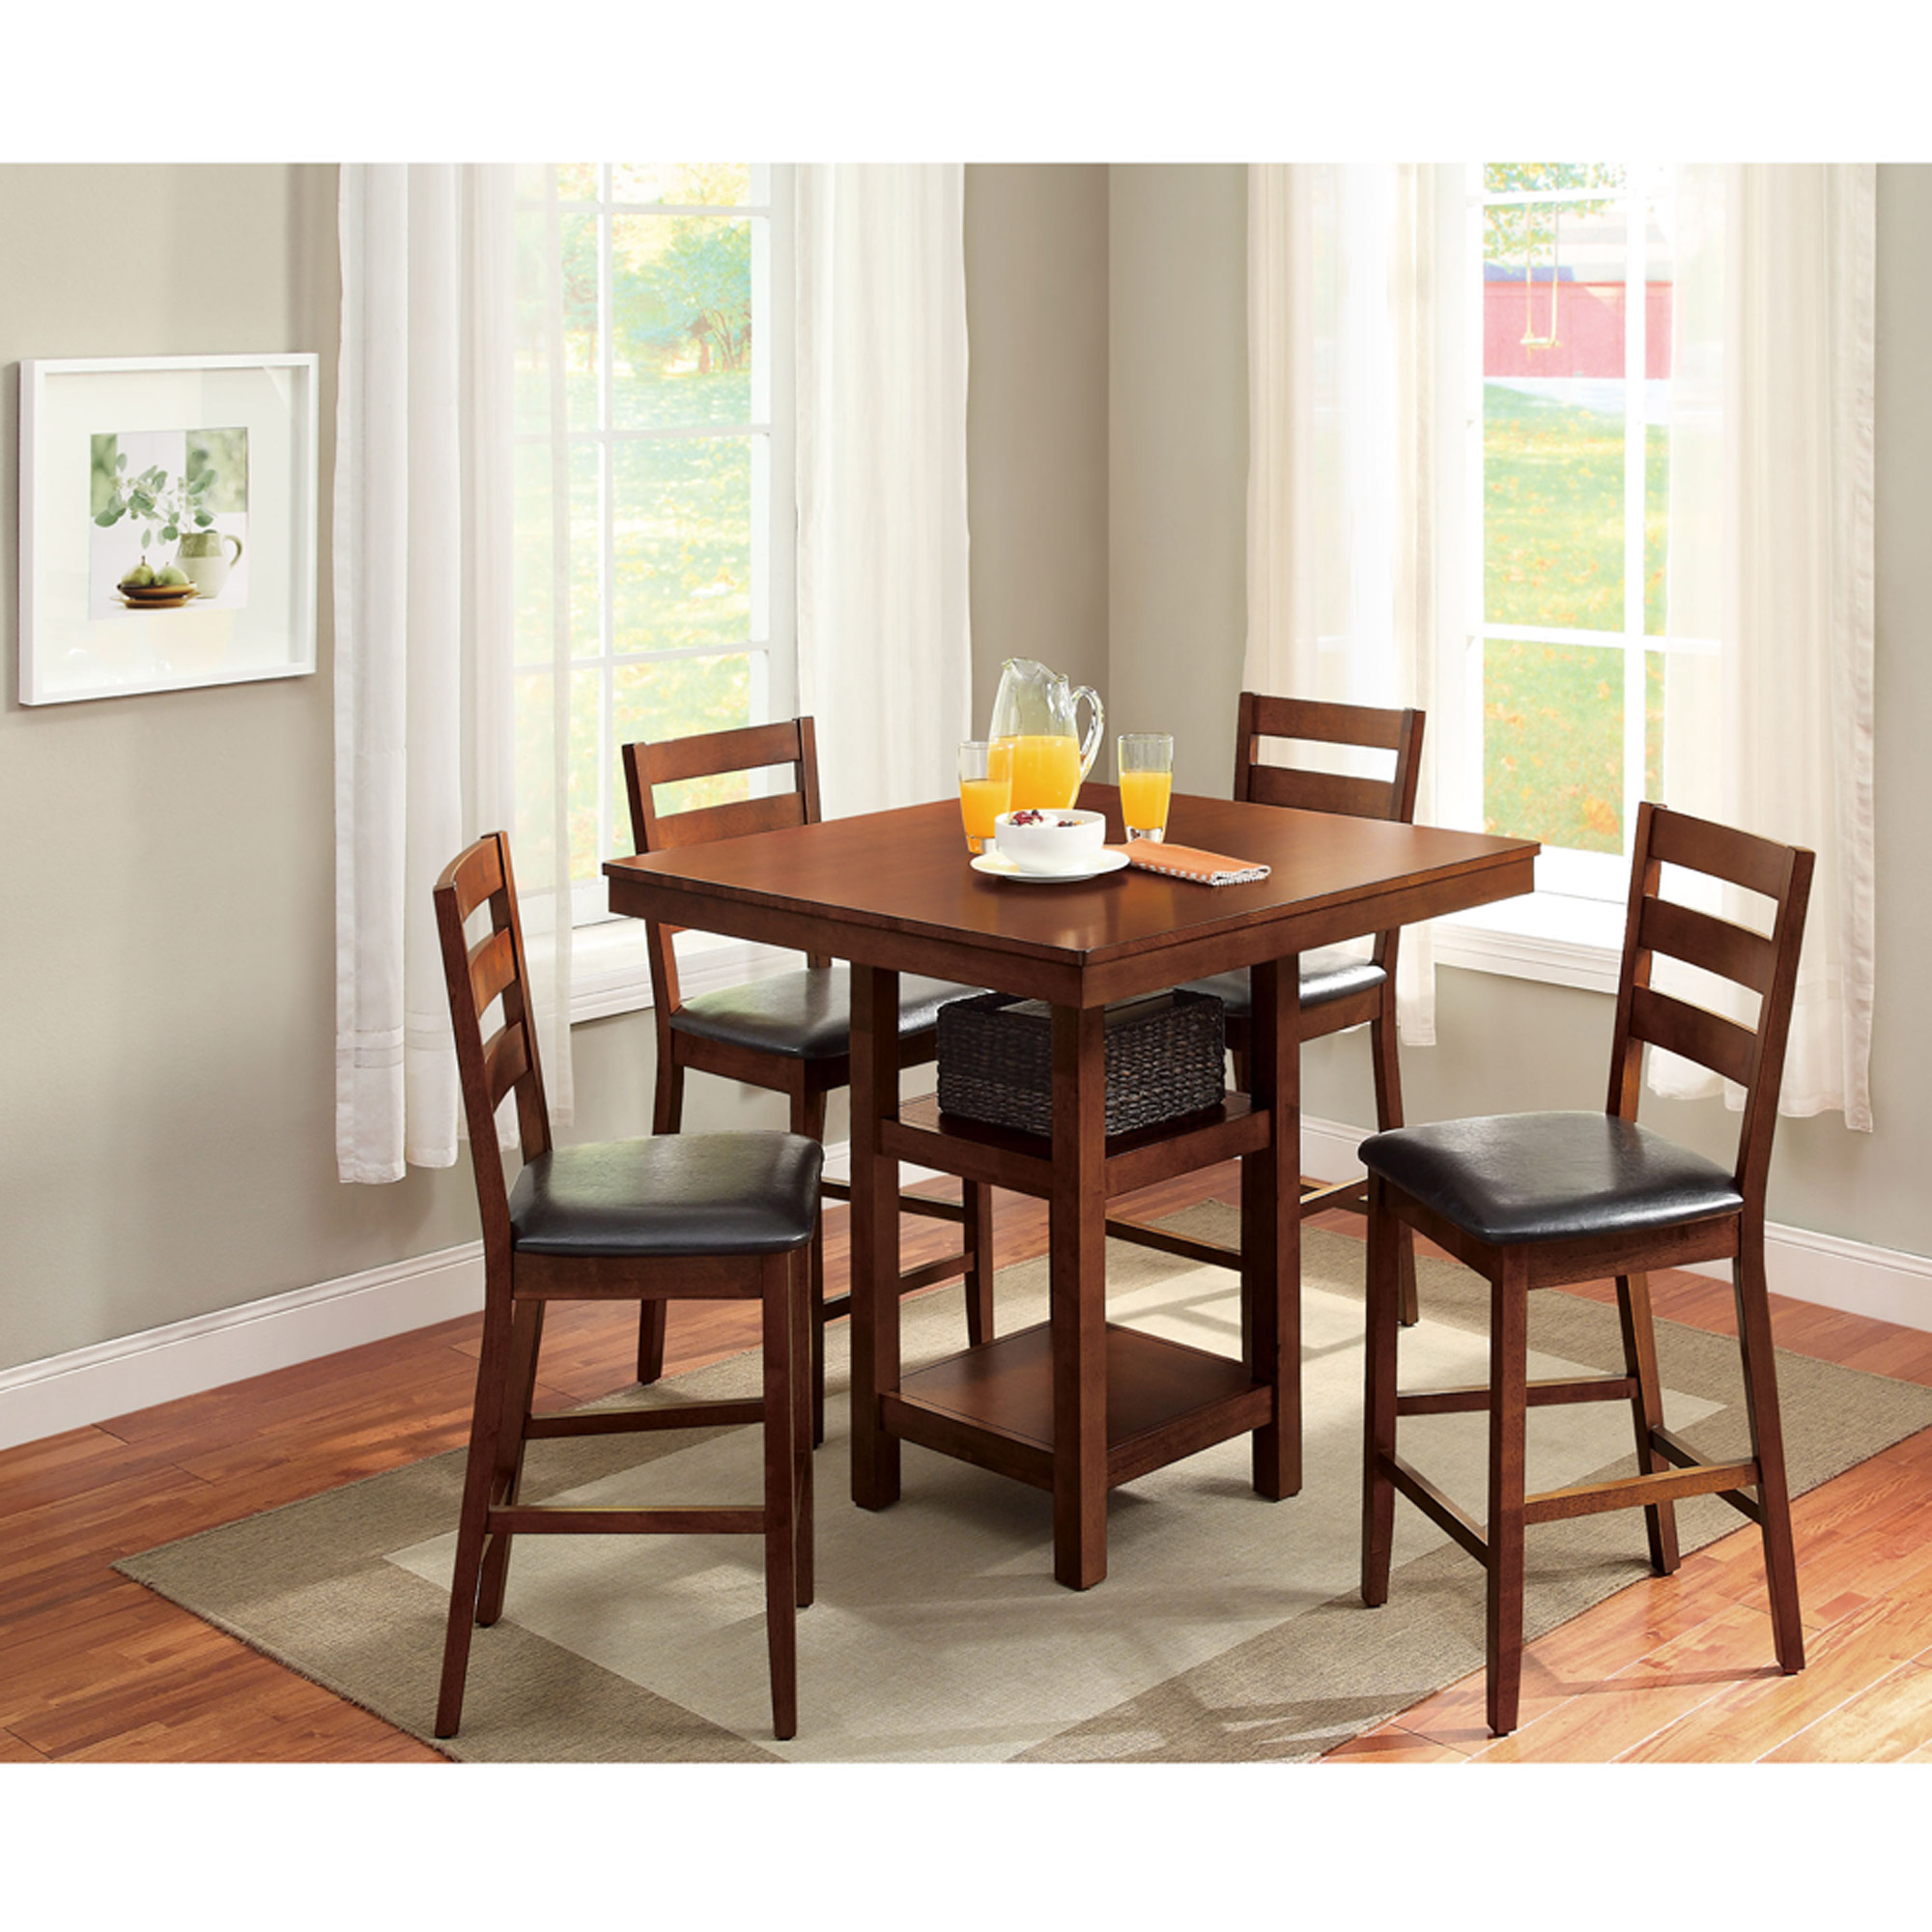 Popular Kitchen u0026 Dining Furniture - Walmart.com cheap dining room chairs